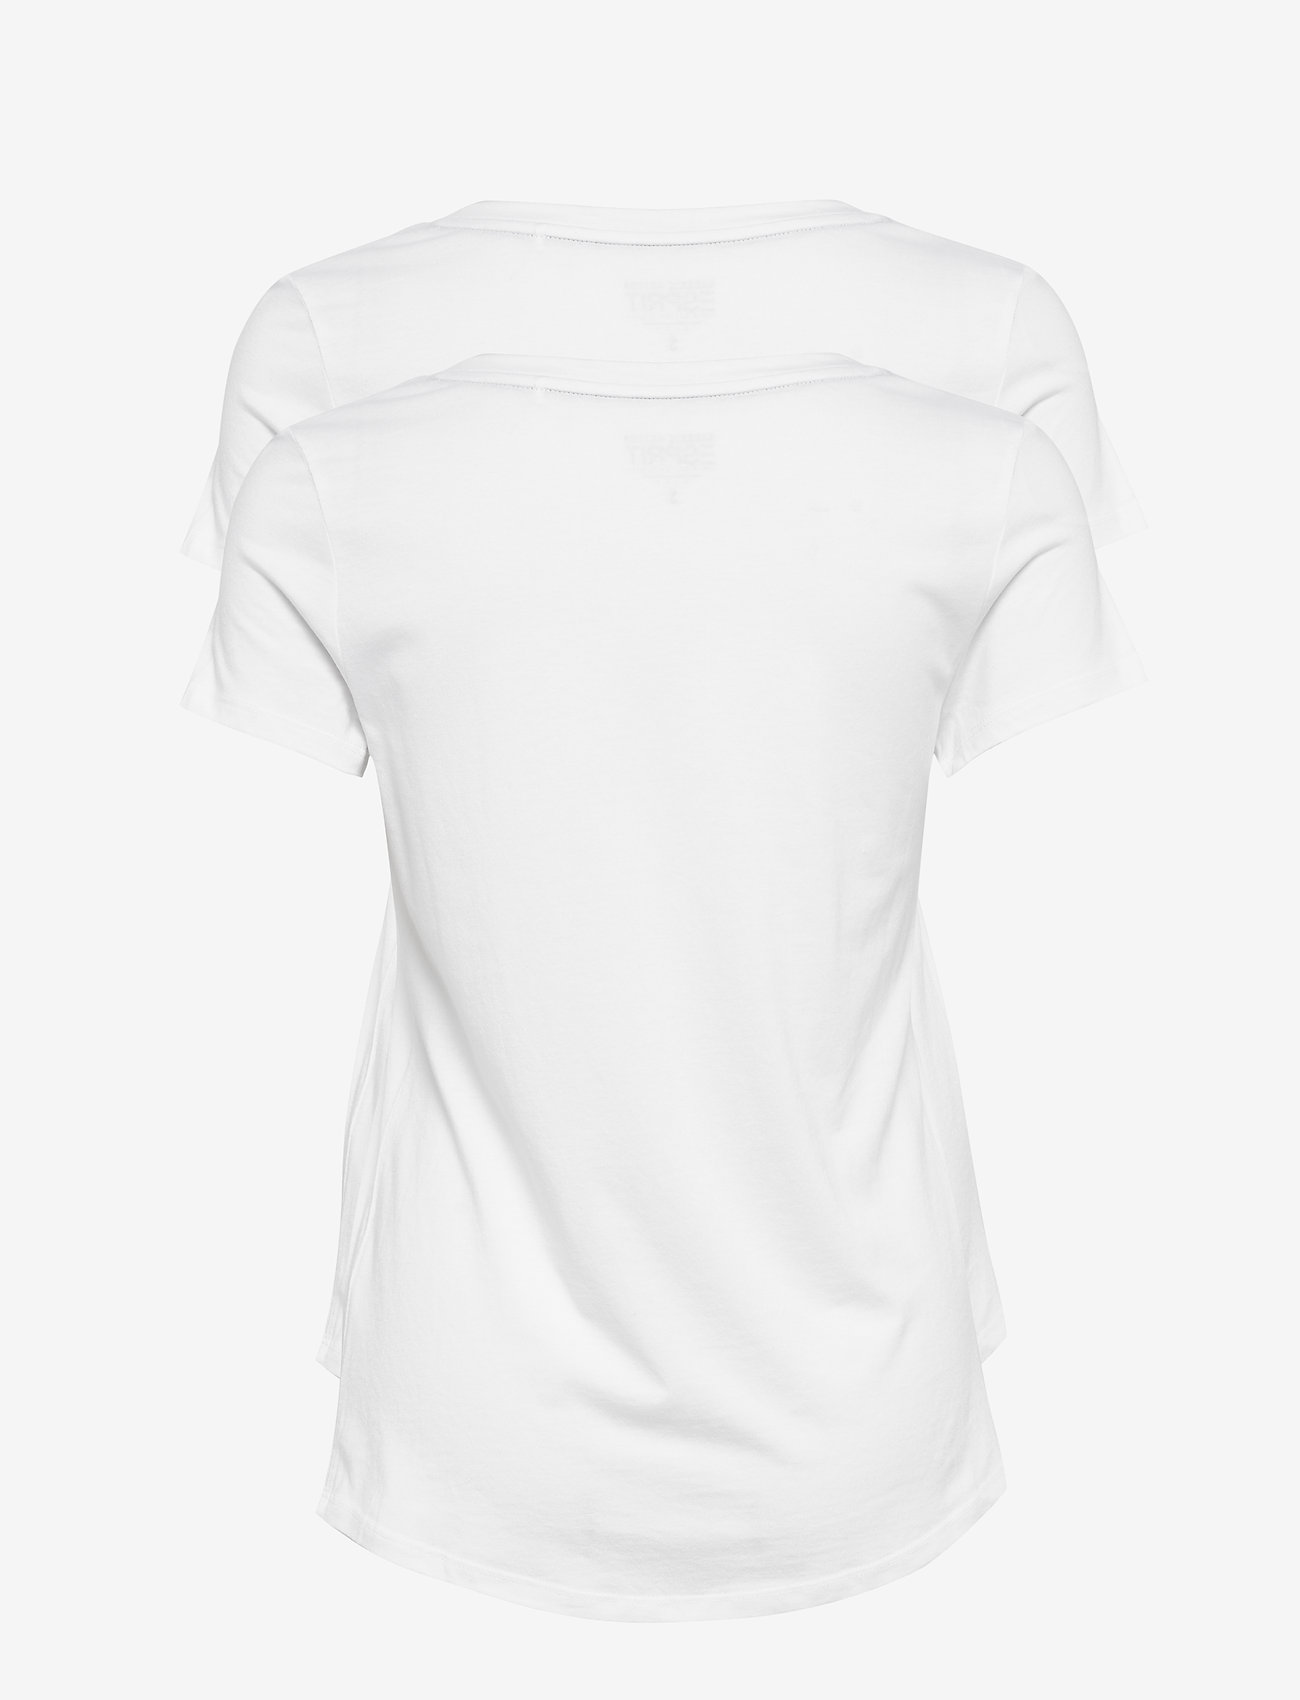 Esprit Casual - Mixed Sets - t-shirt & tops - white - 1